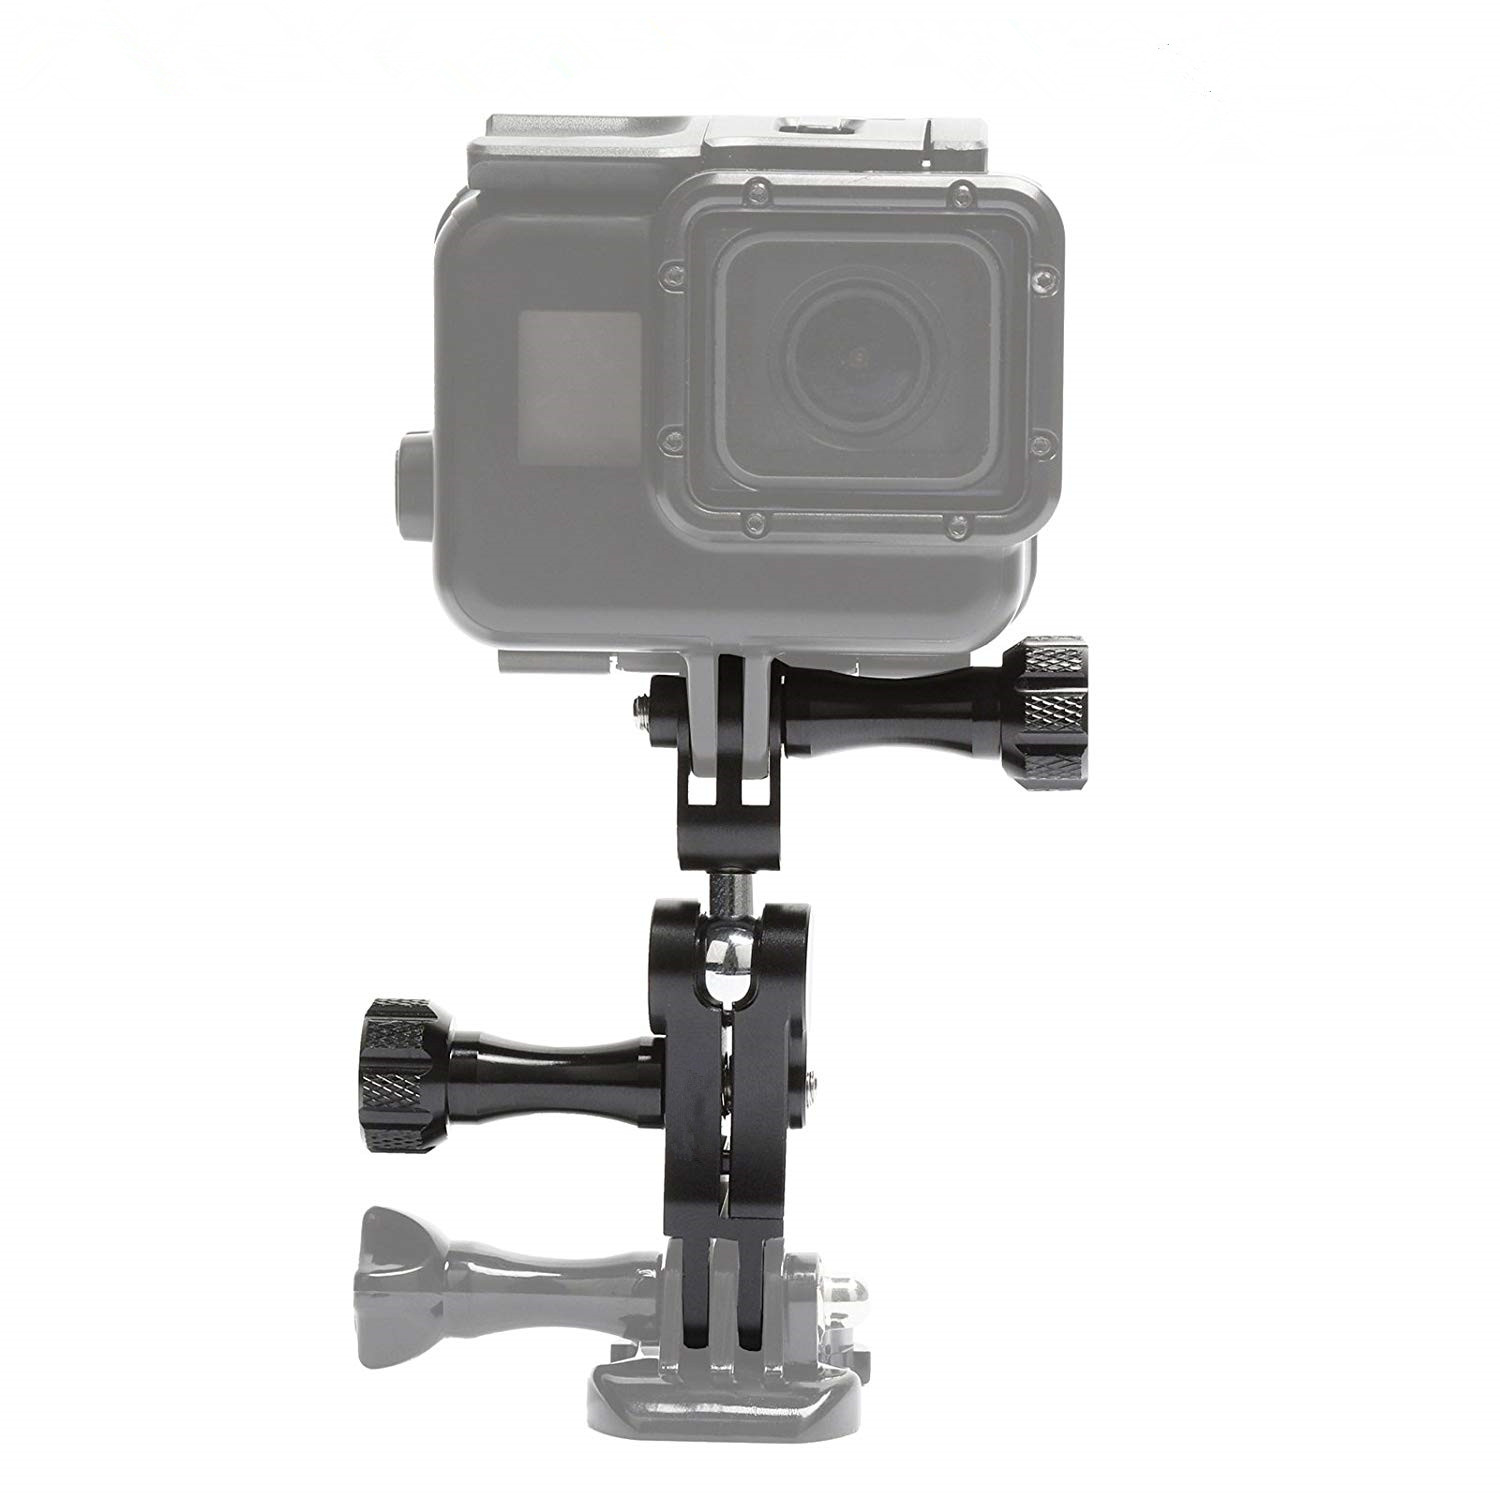 OEM Aluminium Alloy 360 Degree Rotation Ball Joint Mount Swivel Arm Bracket For Go pro 7 / 6 / 5 Etc Action Camera